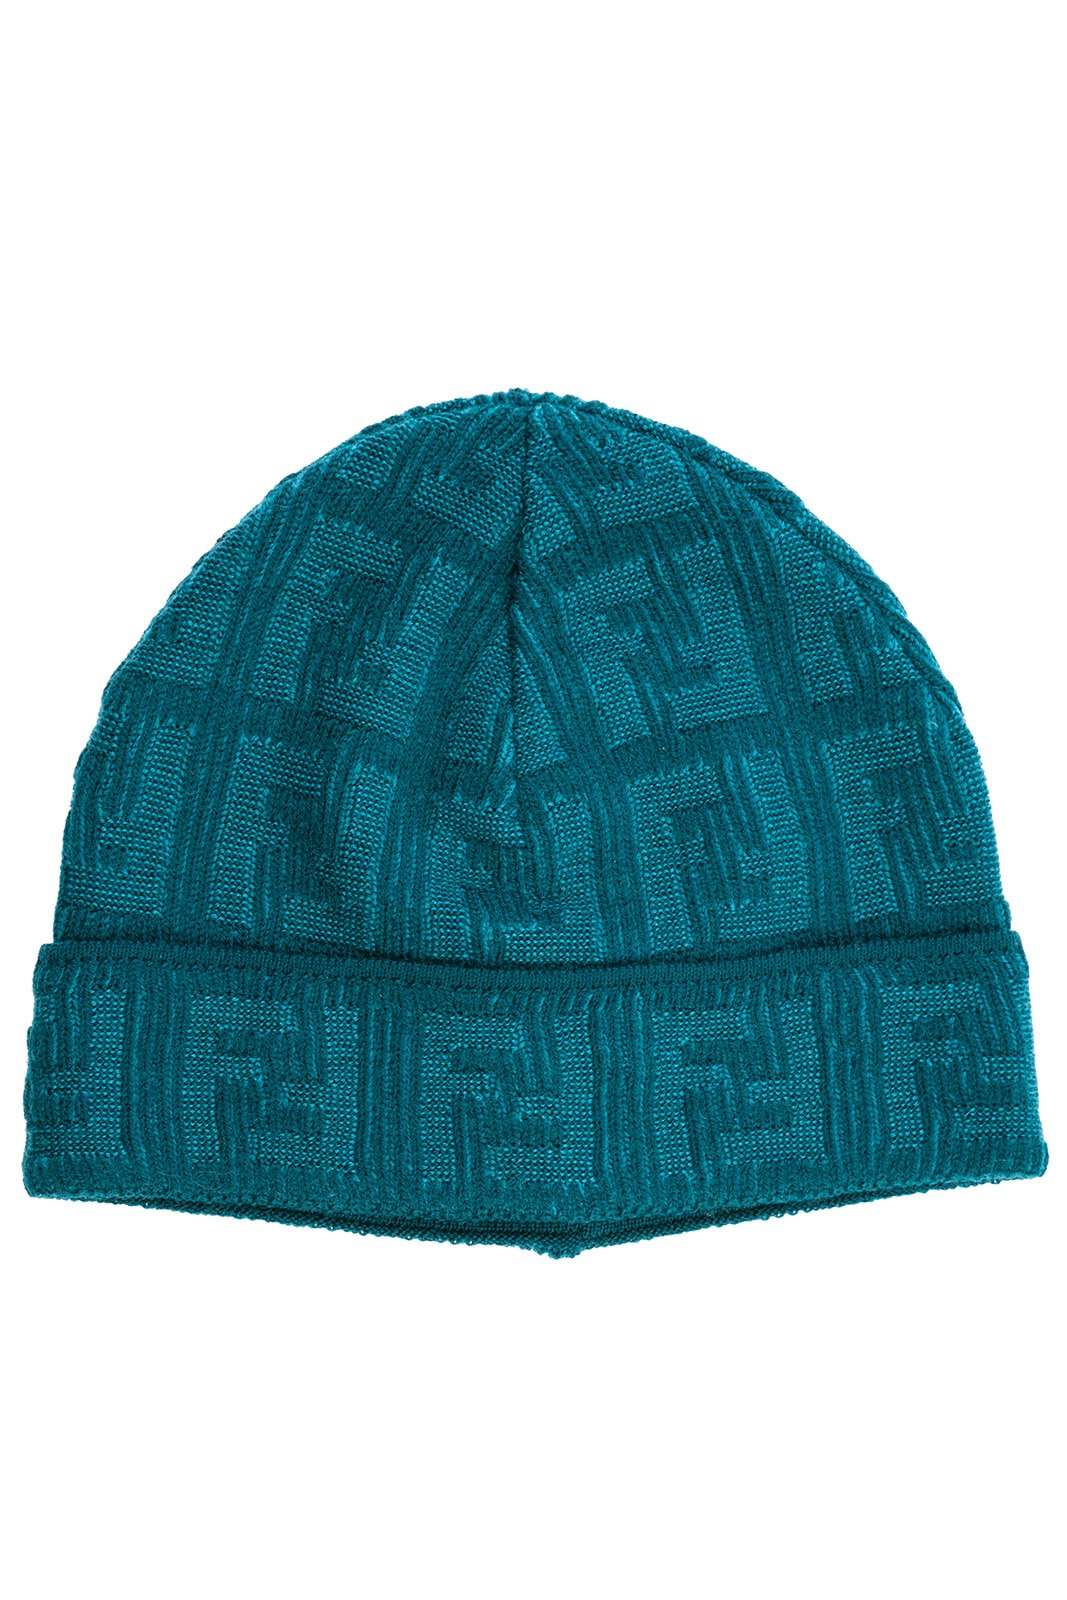 Fendi women's wool beanie hat blu US size UNI FXQ538 Q00 F0QC7